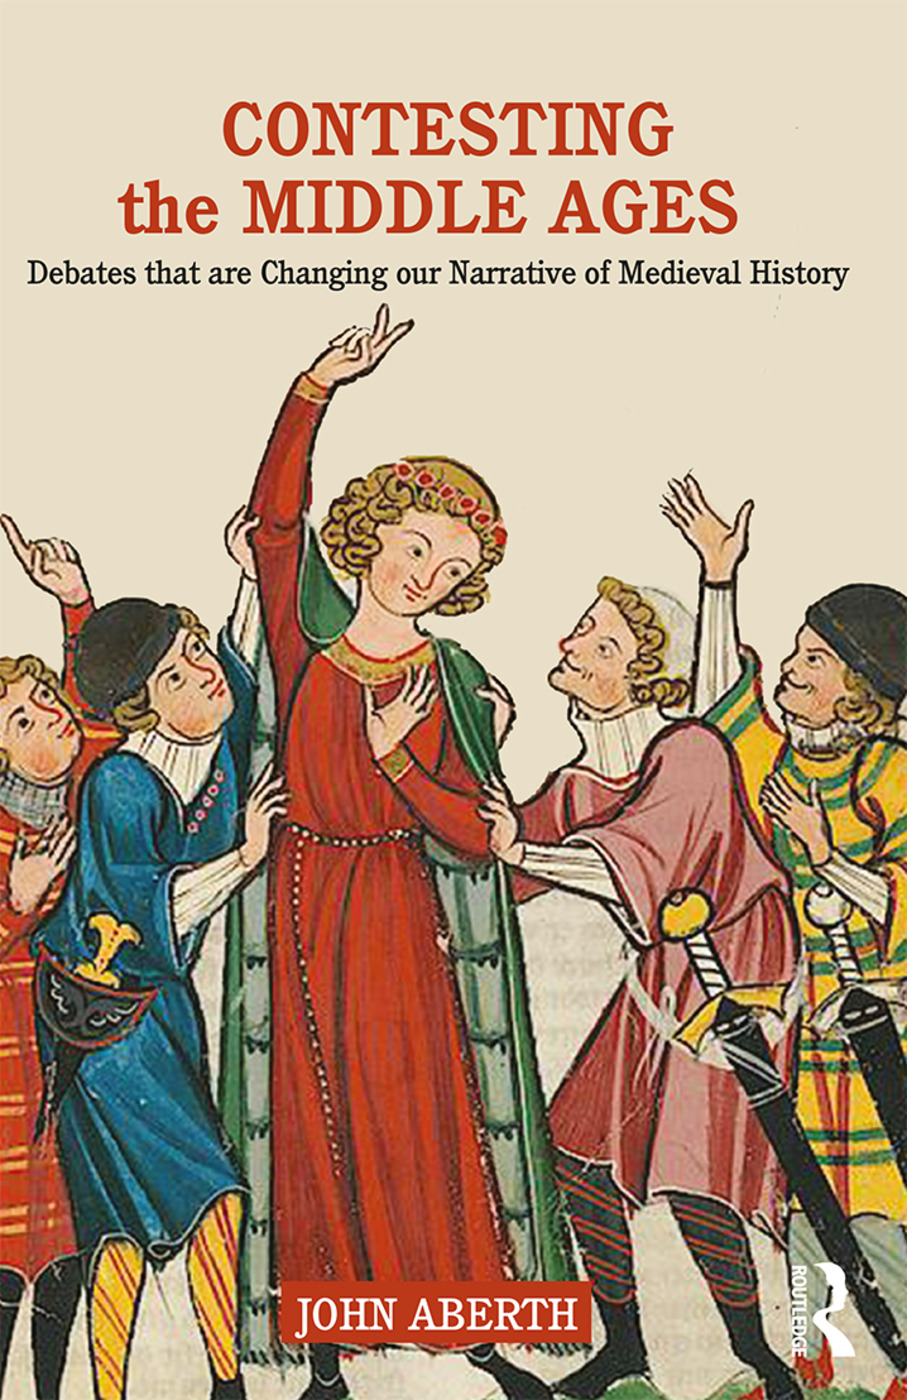 Contesting the Middle Ages: Debates that are Changing our Narrative